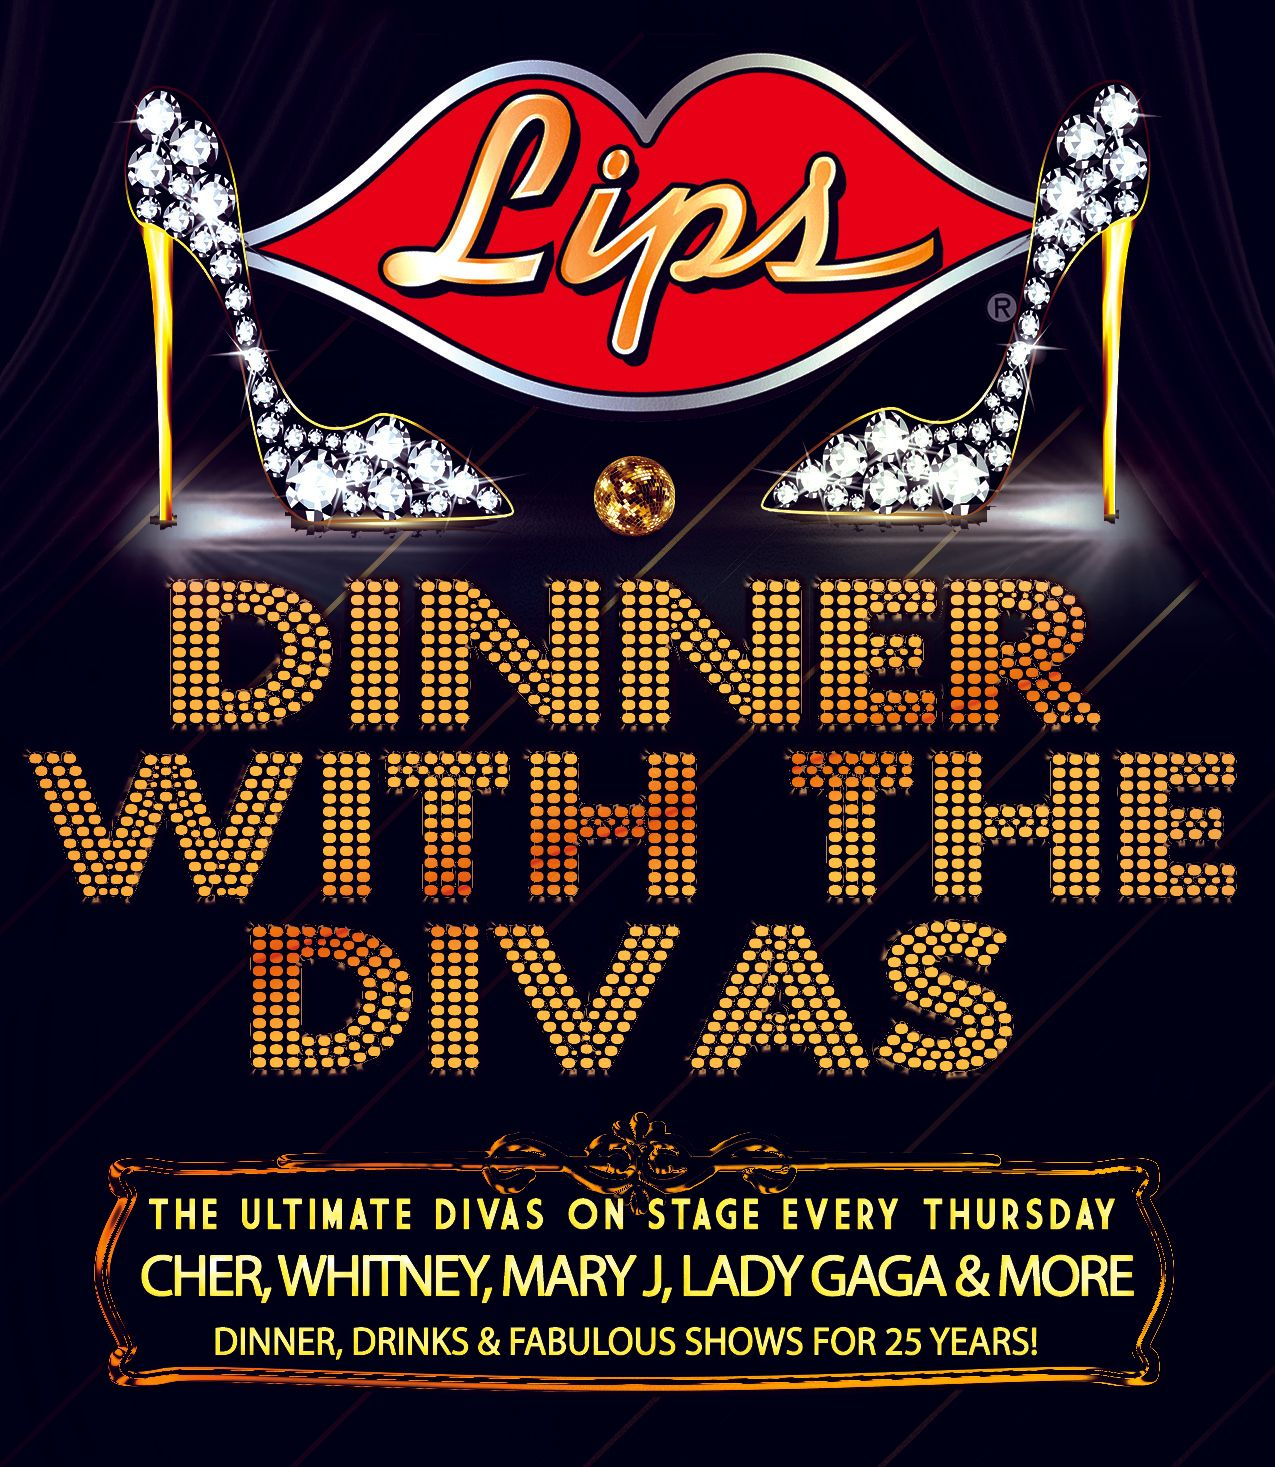 Chicago's ULTIMATE Dinner with The Divas! The only true LaCage experience in Chicago! Party with the Queens! Dinner and Show package $24.95, or order from out a la carte menu. #lipschicago #divas #bachelorette #drag #dragshow #dragqueen #birthday #celebration #burlesque #instadrag #rpdr #rupaul #rupaulsdragrace #instagay #burlesqueshow #queen